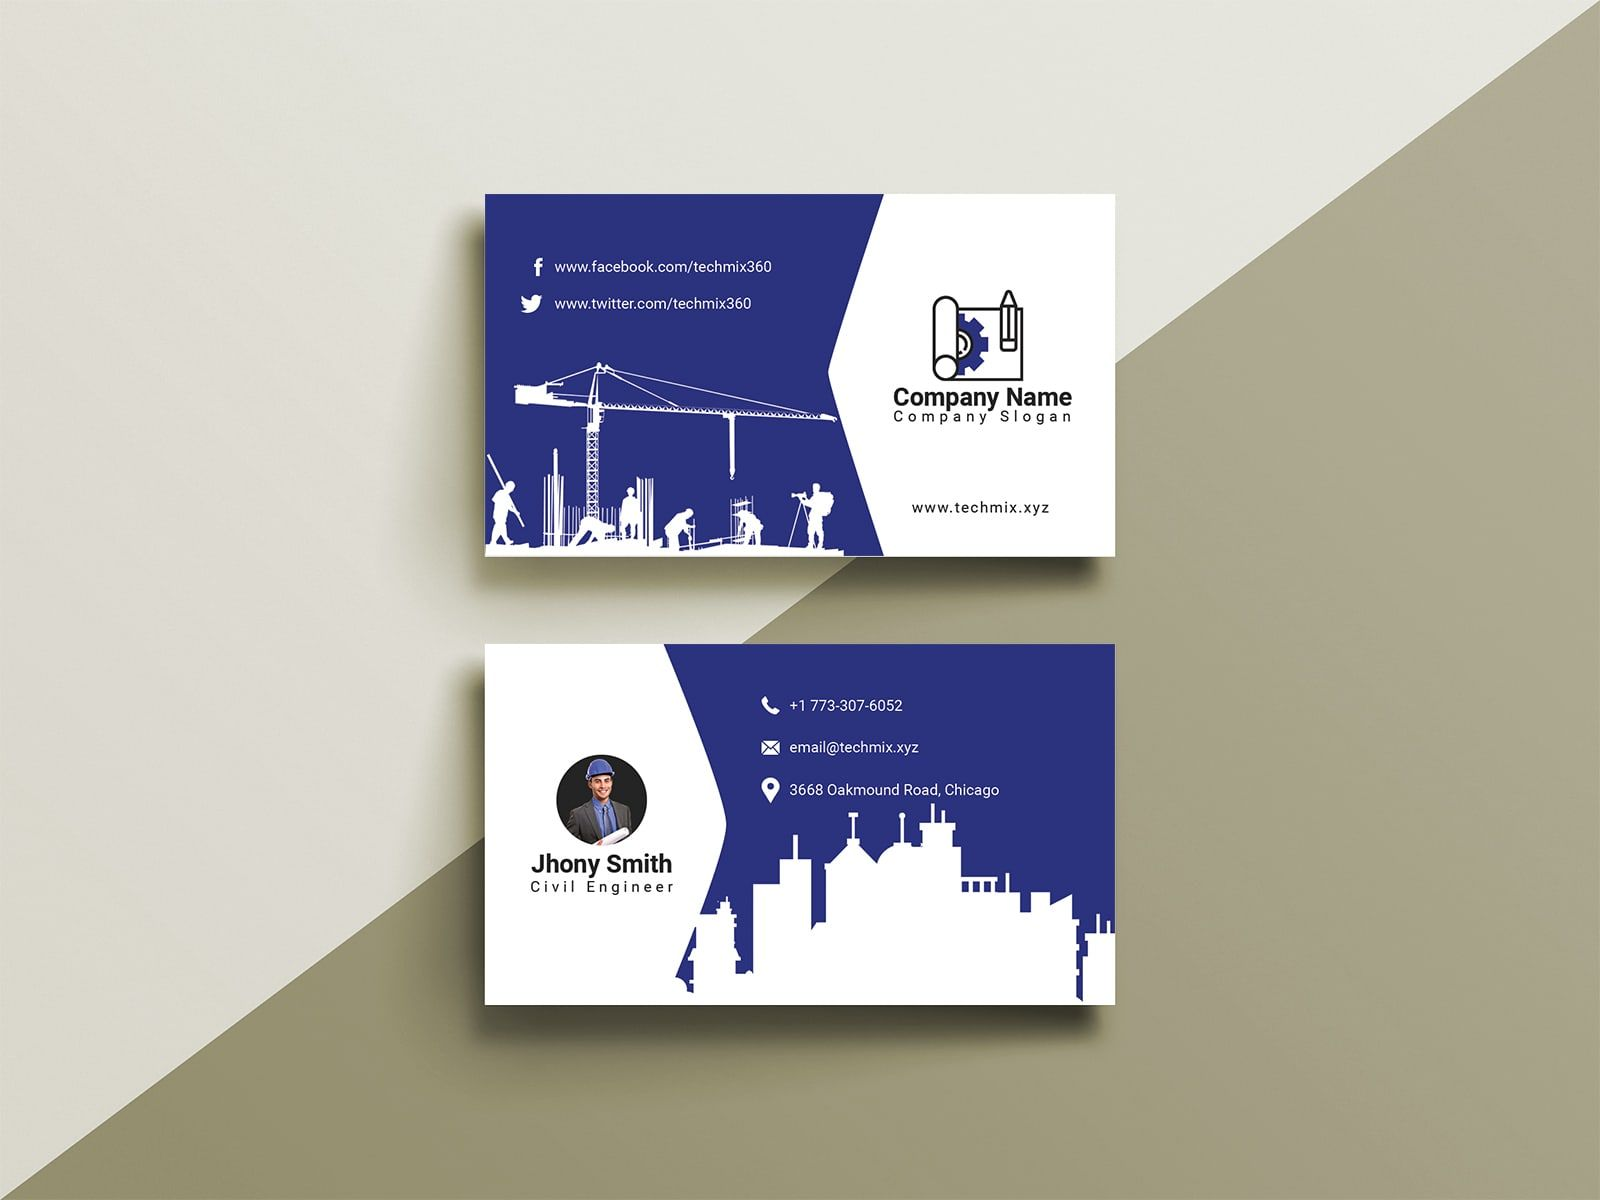 10 Civil Engineer Business Cards Images Business Card Design Business Cards Business Cards Collection,Principles Of Design Pattern Images